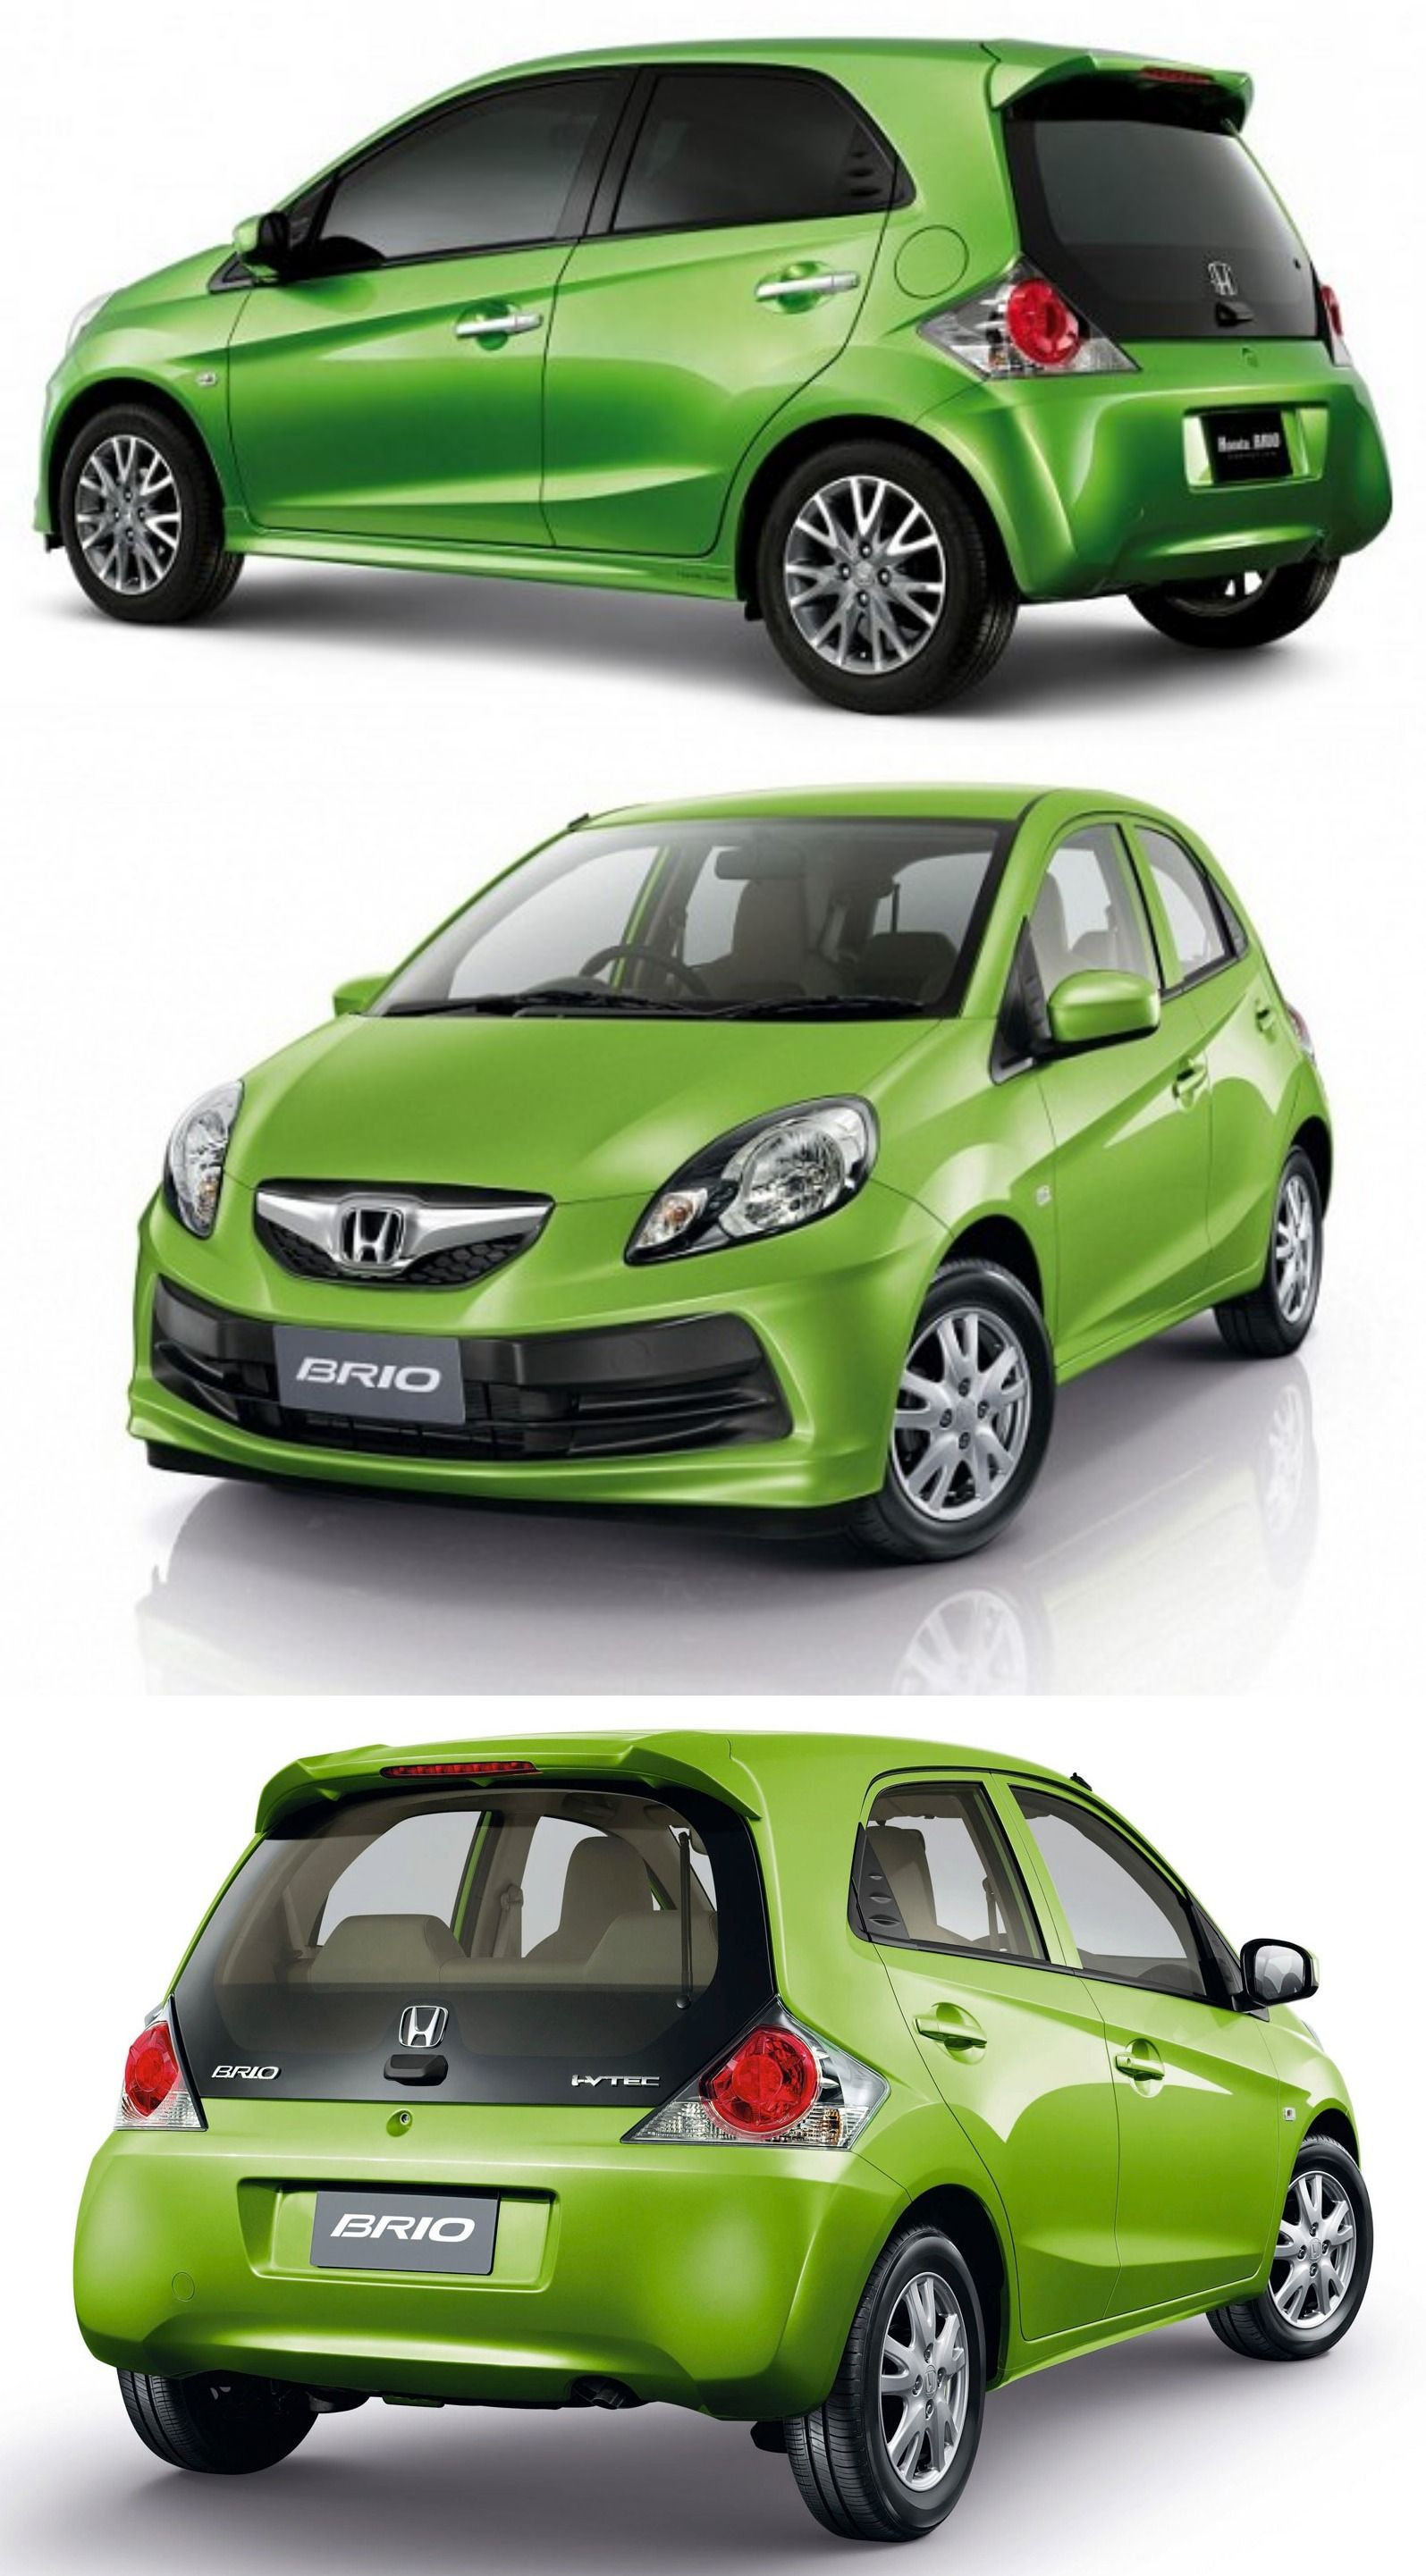 New Honda Brio Design And Test In India